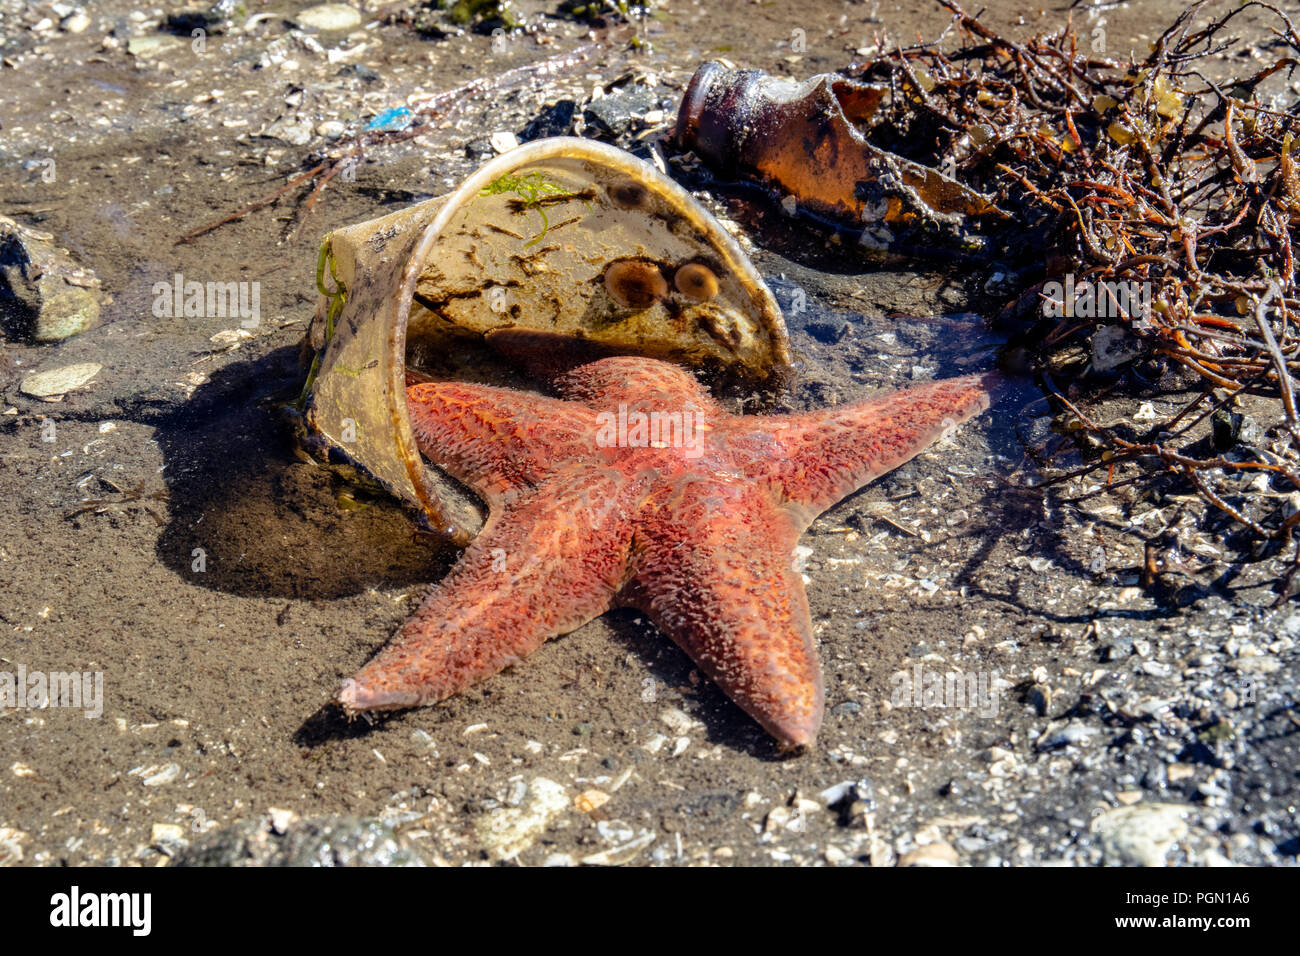 Sea Star caught in plastic cup with trash on beach - Brentwood Bay, Saanich Peninsula, Vancouver Island, British Columbia, Canada - Stock Image